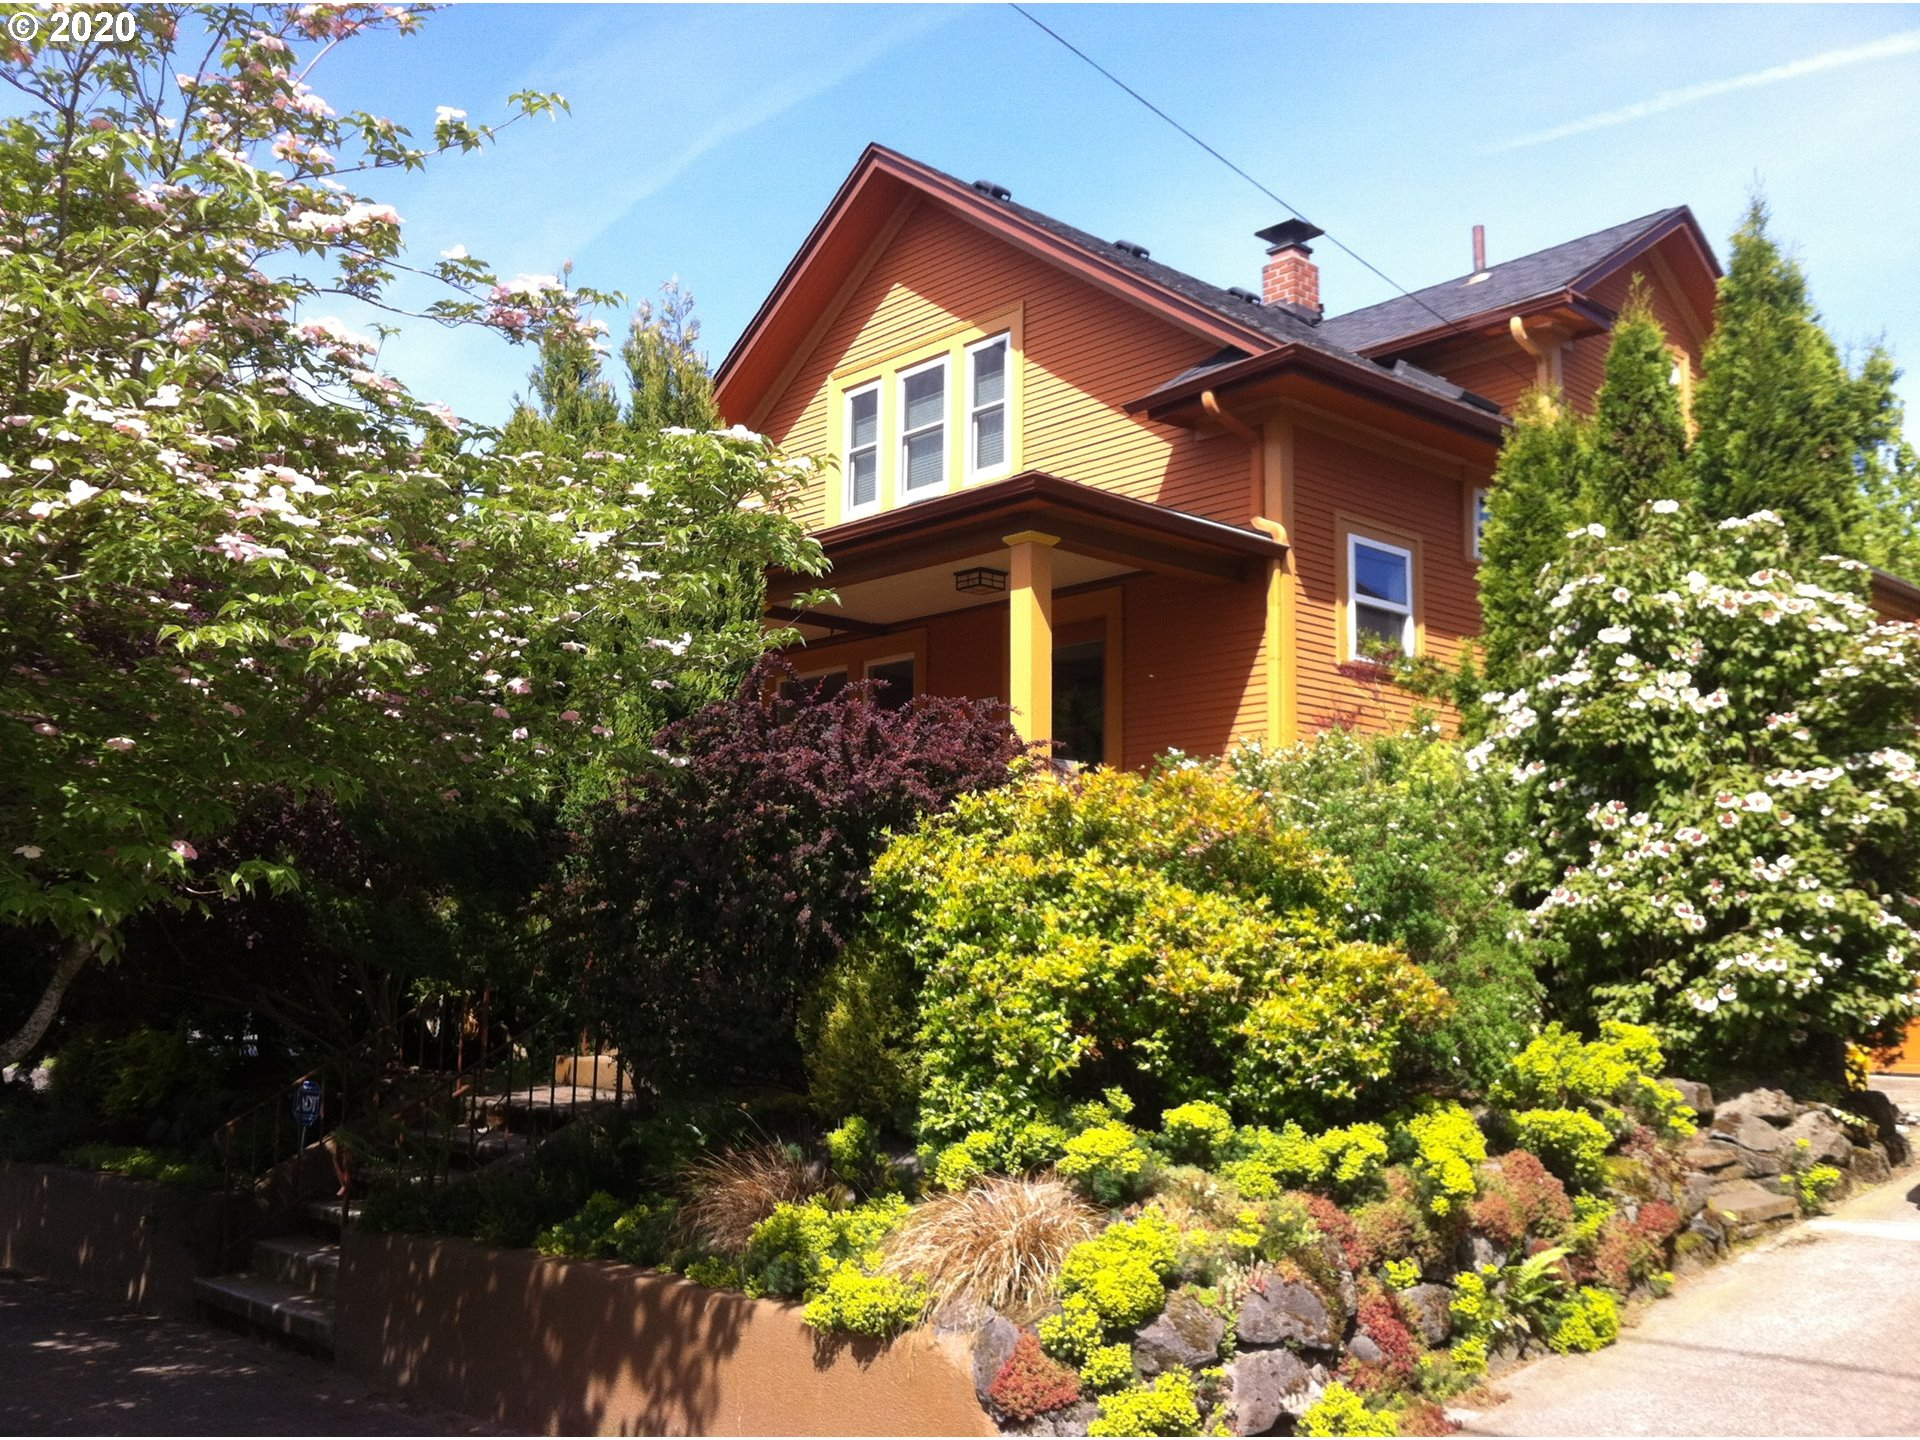 Irvington Gem! Classic 1900's PDX Craftsman, Old World Charm True-To-Era, Fabulous Curb Appeal, Large Covered Porch, Original Fir Hardwood Floors, Gourmet Kitchen, Cook Island w/SS Gas Range, Granite Counters, Skylights, Main Level Bedroom & Half Bath, Formal Dining, Custom Built-ins, Upper Level 3 Bedrooms & Full Bath w/ Claw-Foot Bathtub, Finished Basement, New Carpet, Laundry Room, Backyard Oasis w/ Raised Garden Beds. Prime Location, Close To Shops, Restaurants & Parks. Walk Score 89.